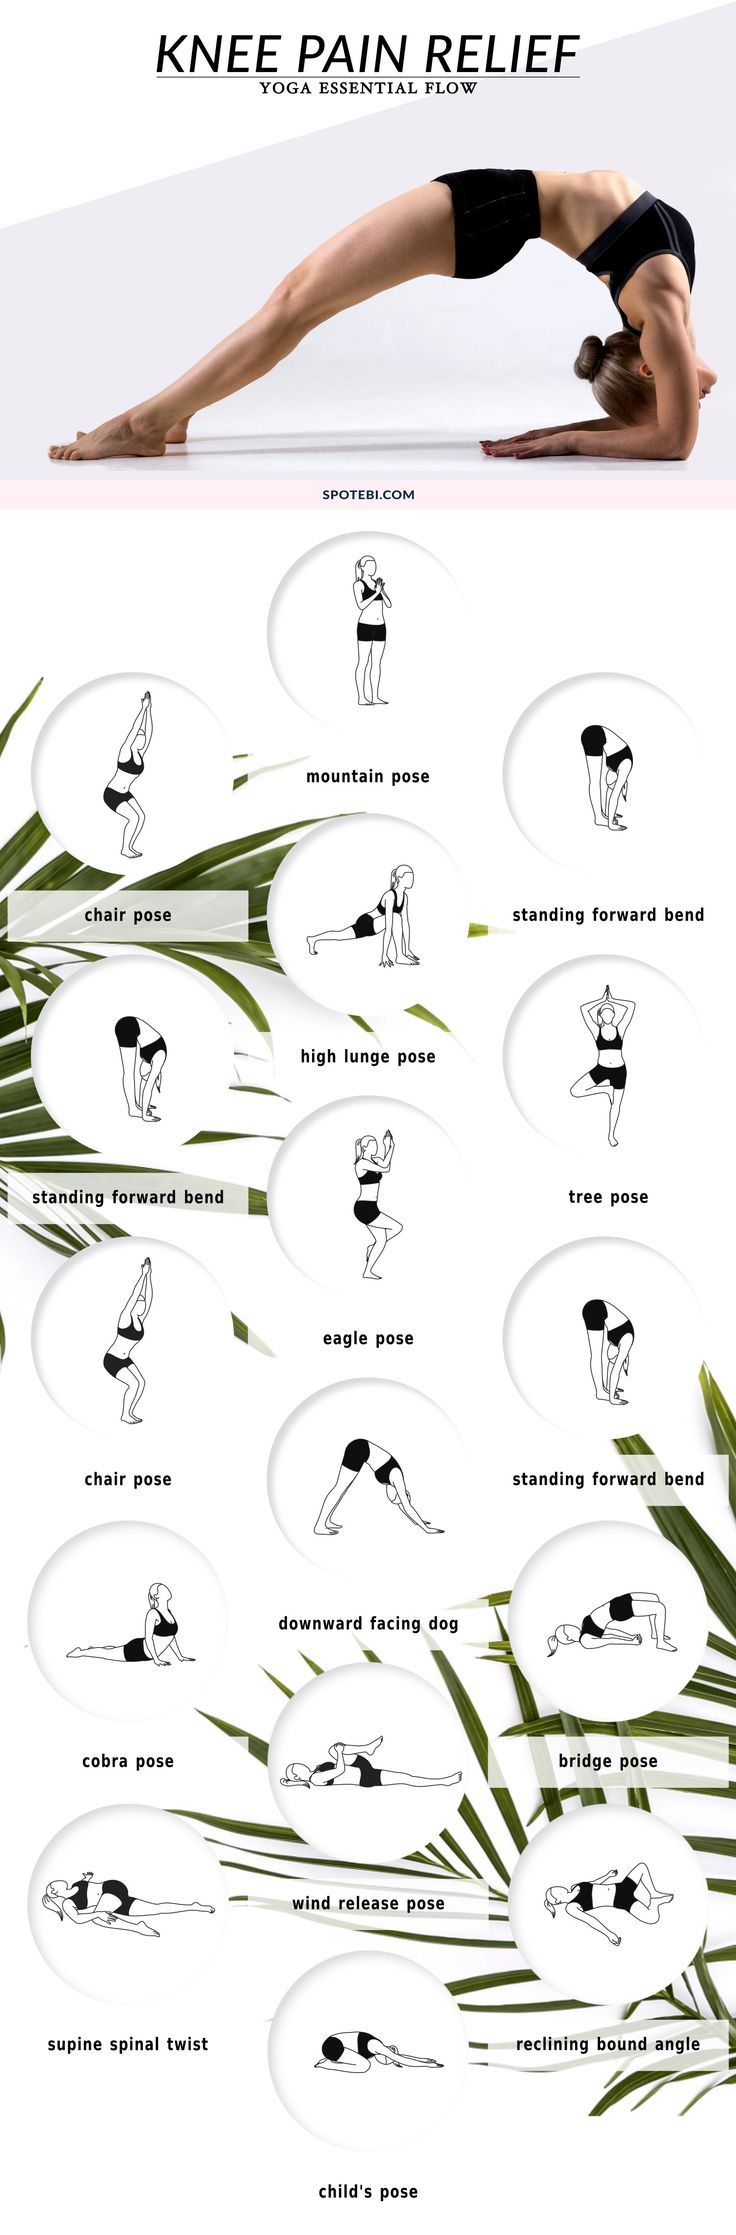 Knee pain diagnosis chart - Relieve Knee Pain At Home With This 12 Minute Yoga Essential Flow Perform These